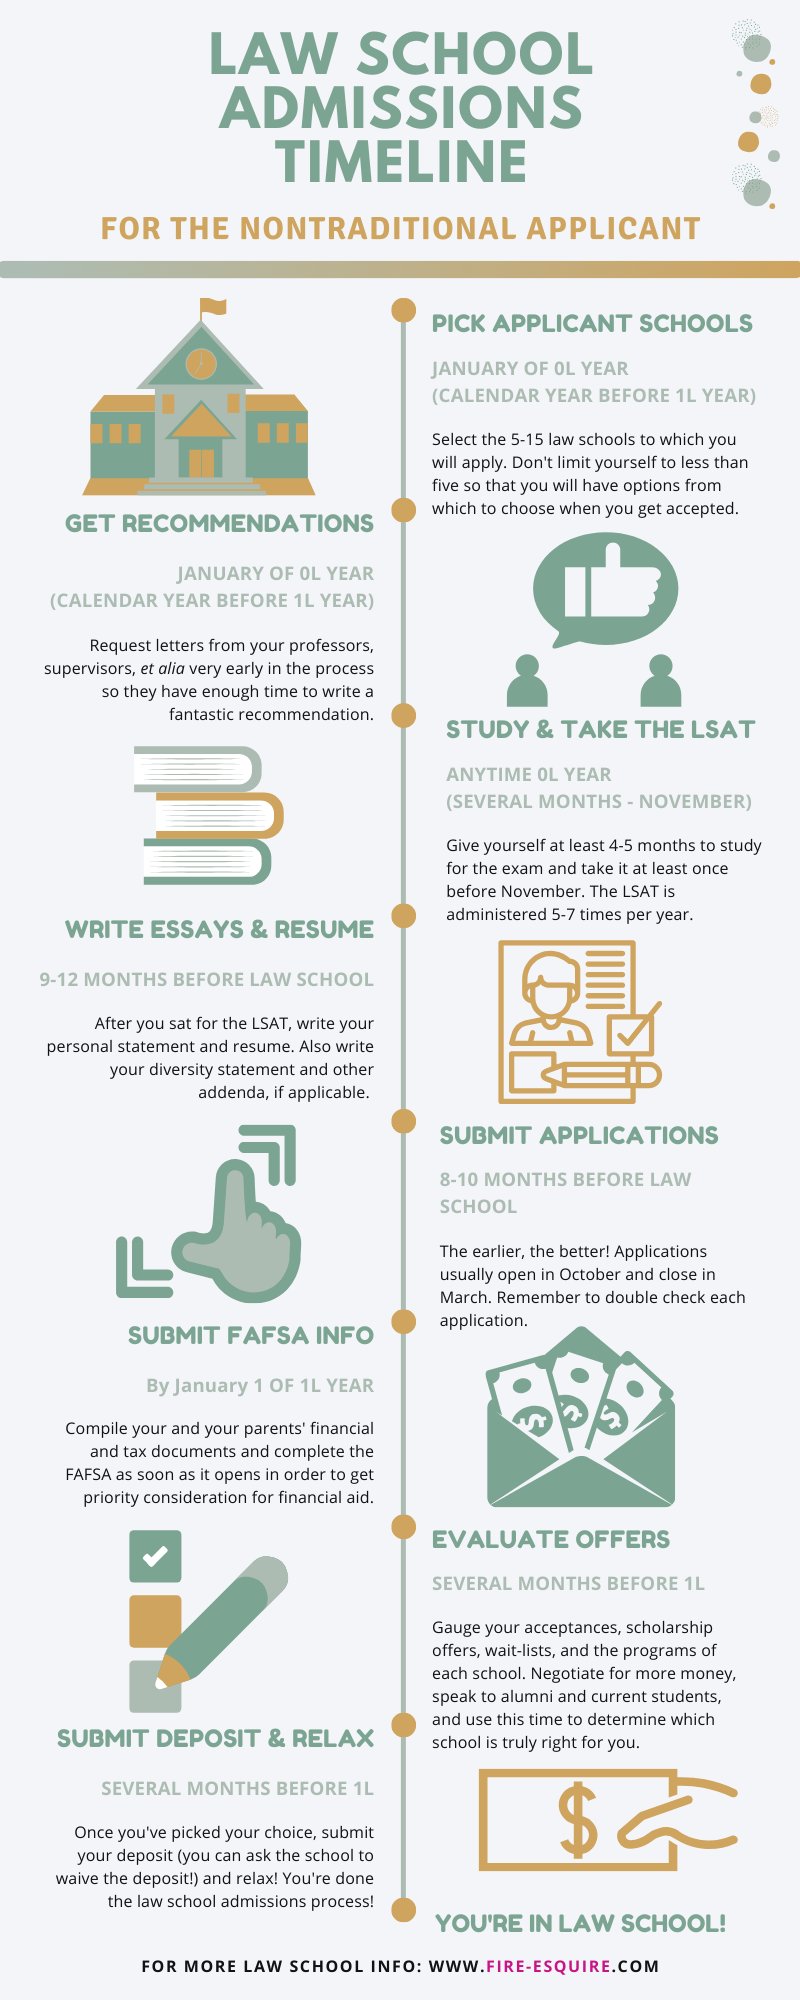 If you're applying to law school after working for few